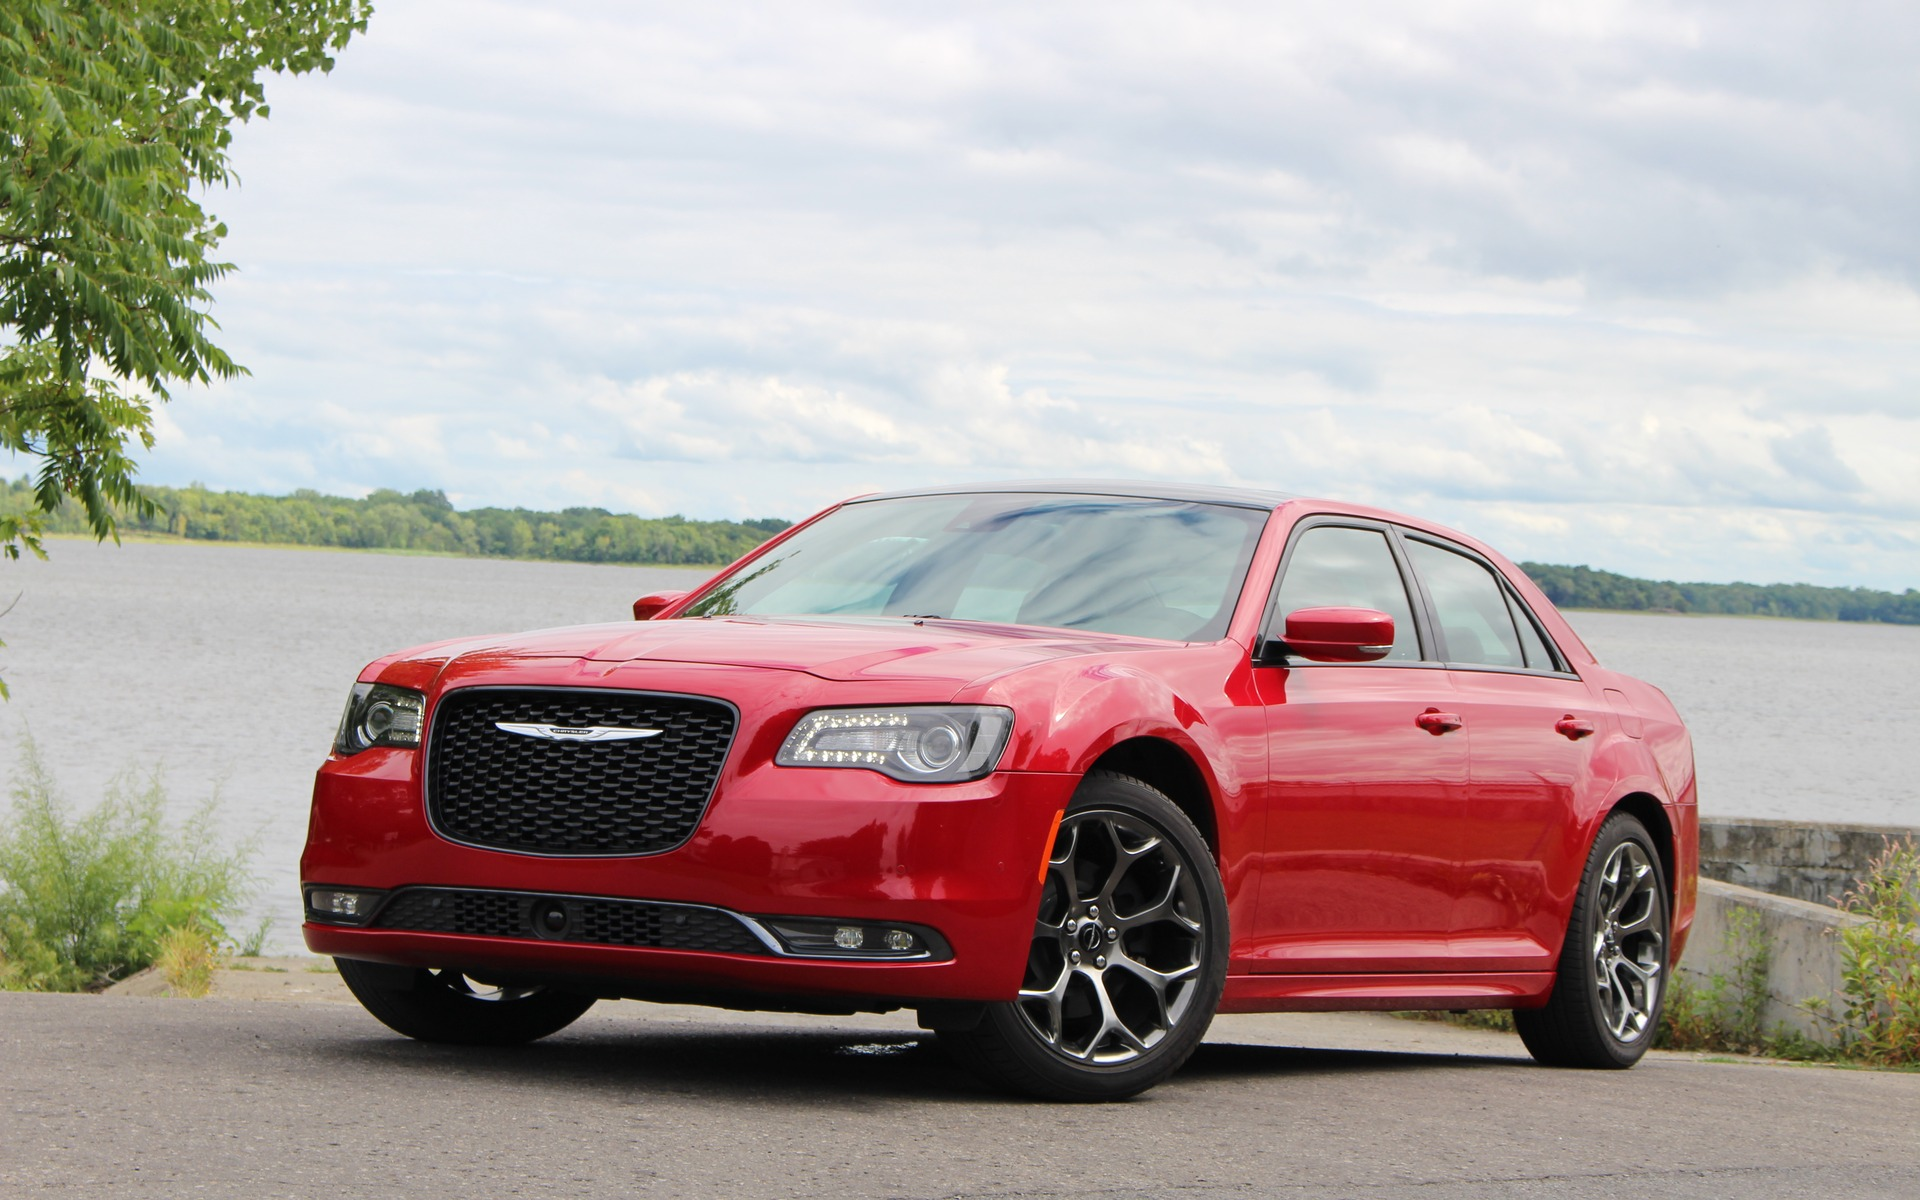 en promo news trend first test chrysler motor